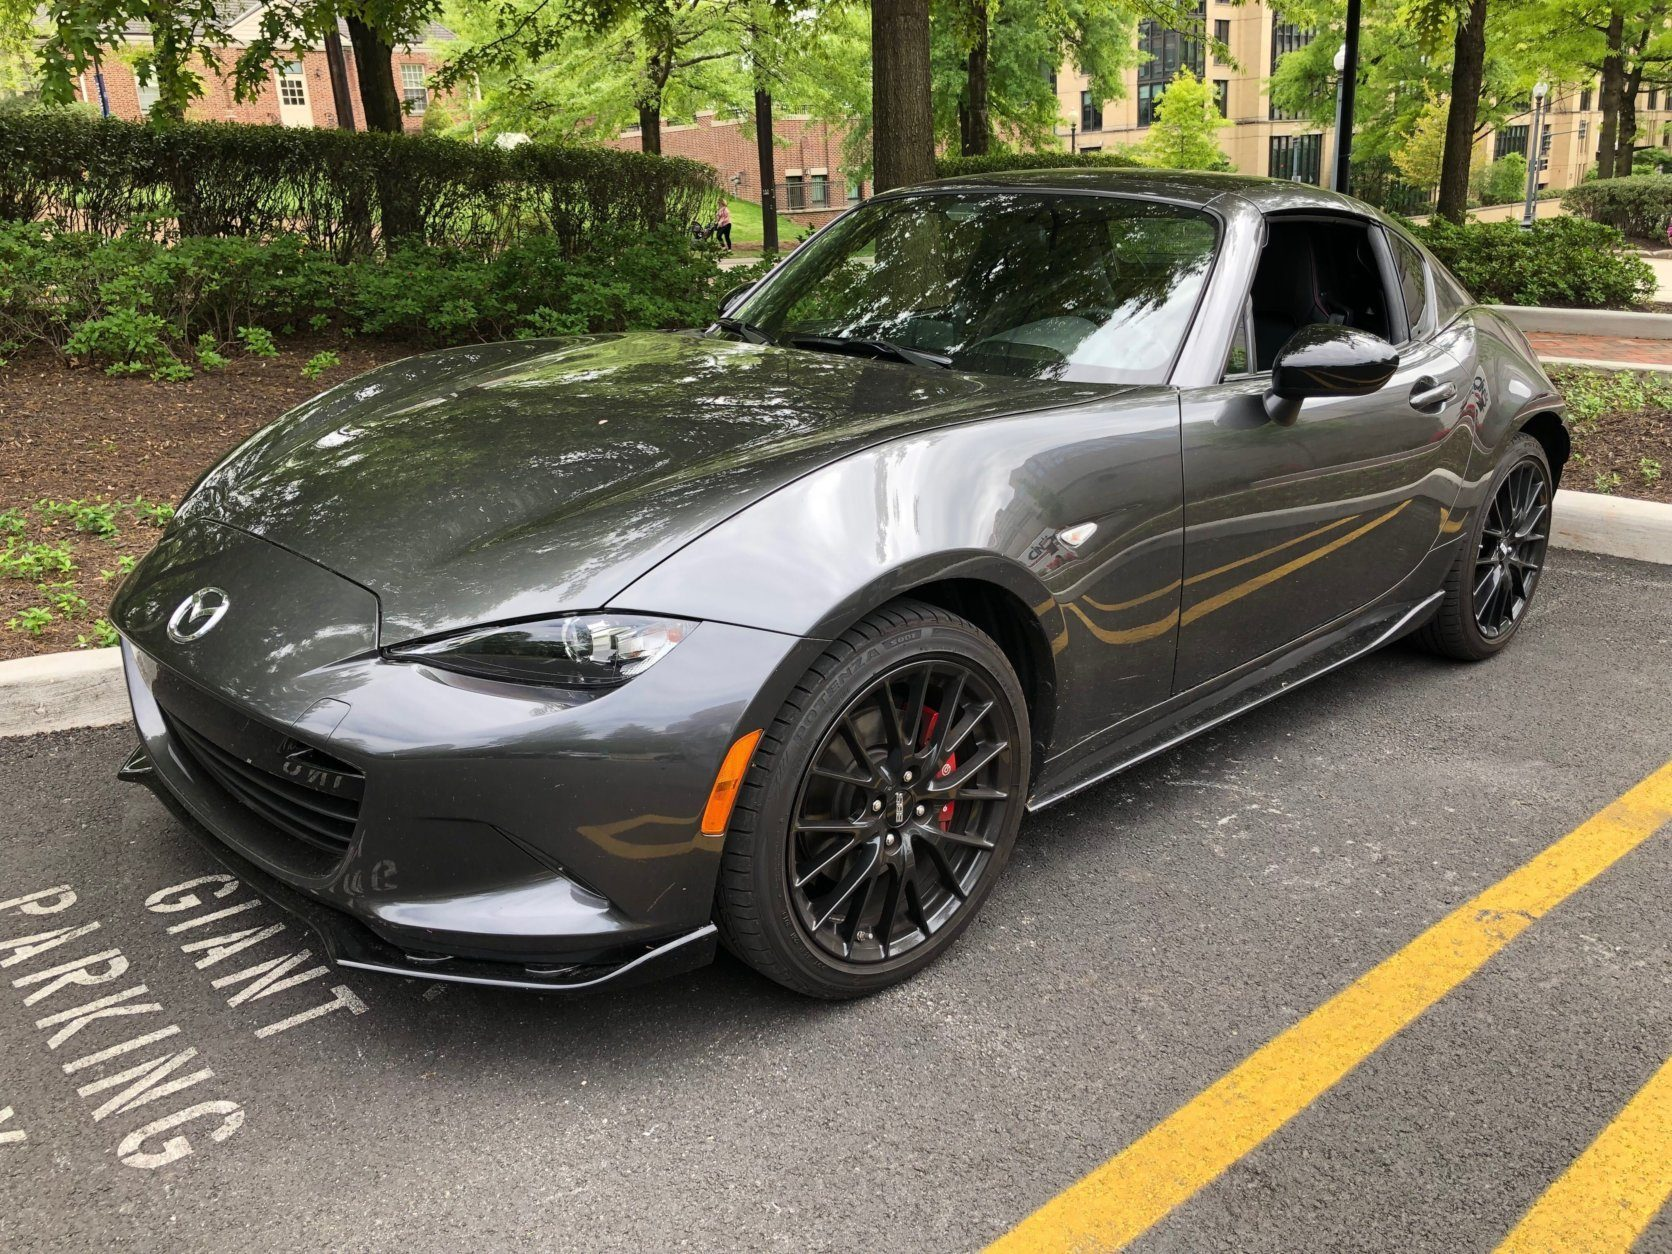 "<p><strong>2019 Mazda MX-5 Miata Club RF</strong></p> <p><strong>Price: </strong>$38,635 as driven</p> <p>Delivers on the crisp and stripped-down driving experience that Miatas are known for. The optional retractable hard top (RF stands for ""retractable fastback"") is easy to use.</p>"